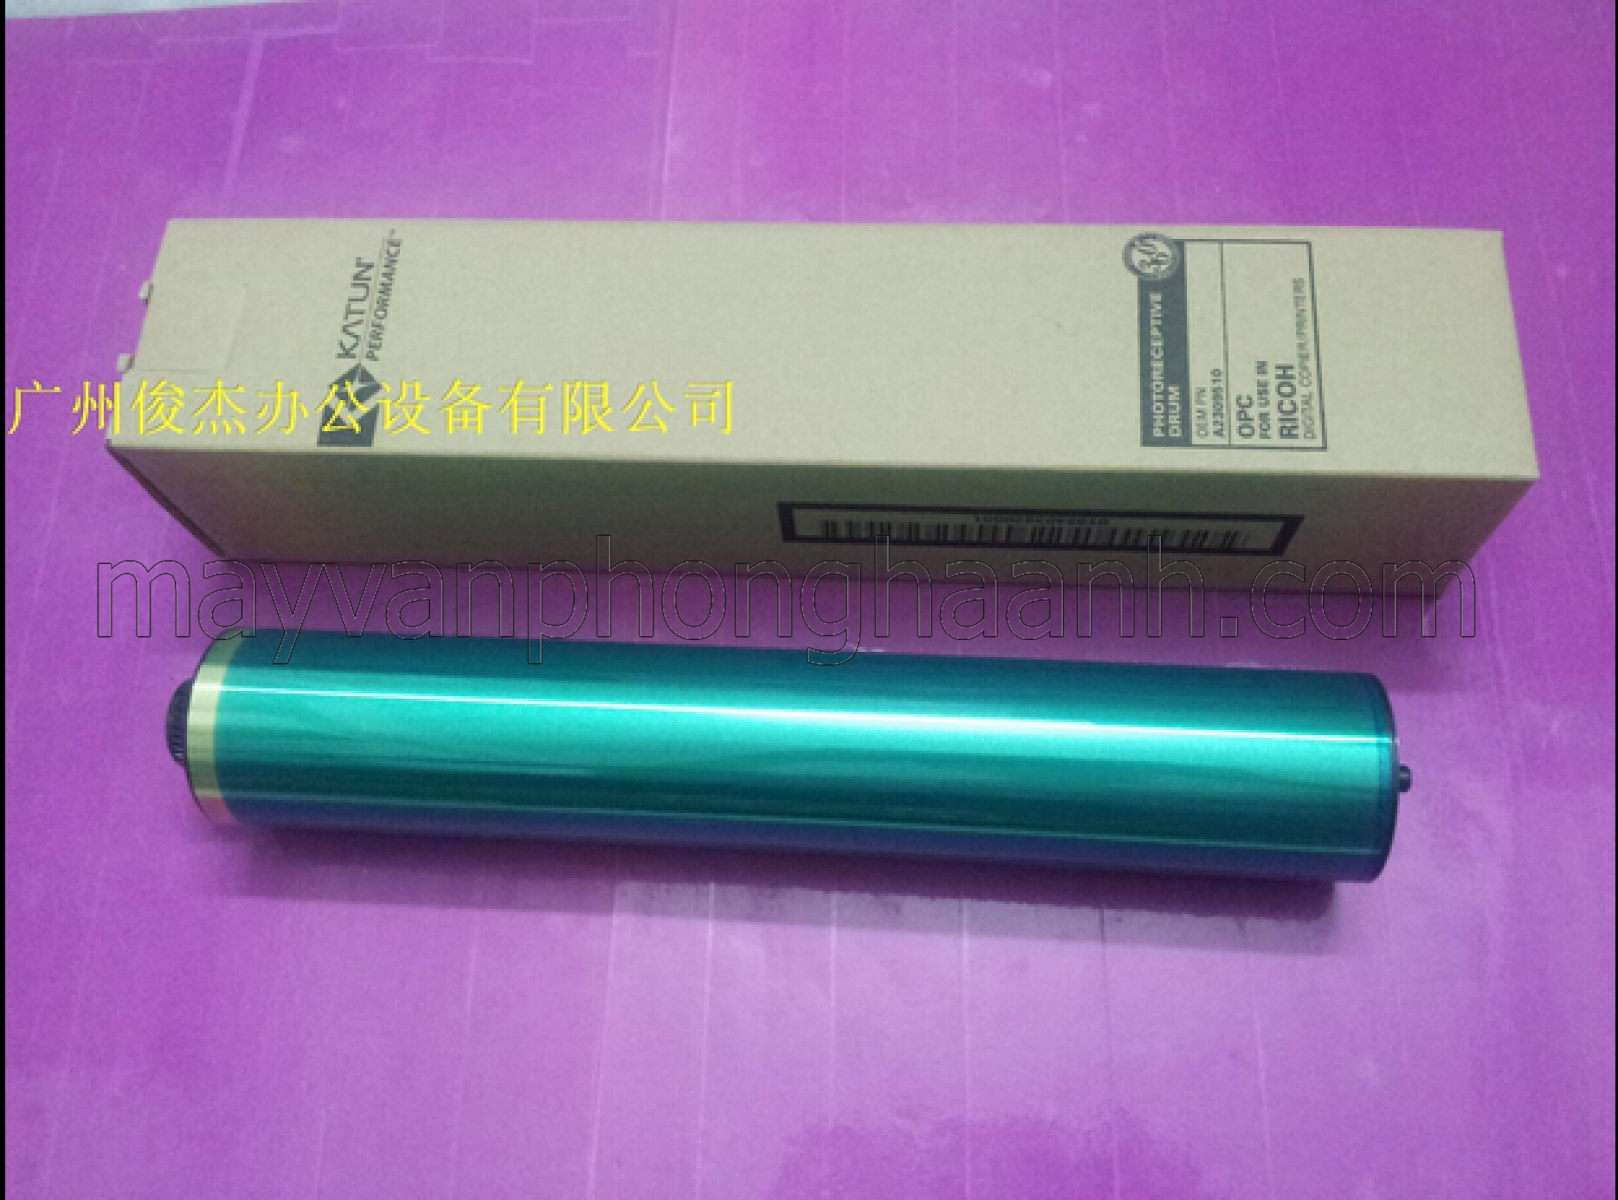 trong-photocopy-ricoh-mp-4000-4001-4002-5000-5001-5002-katun